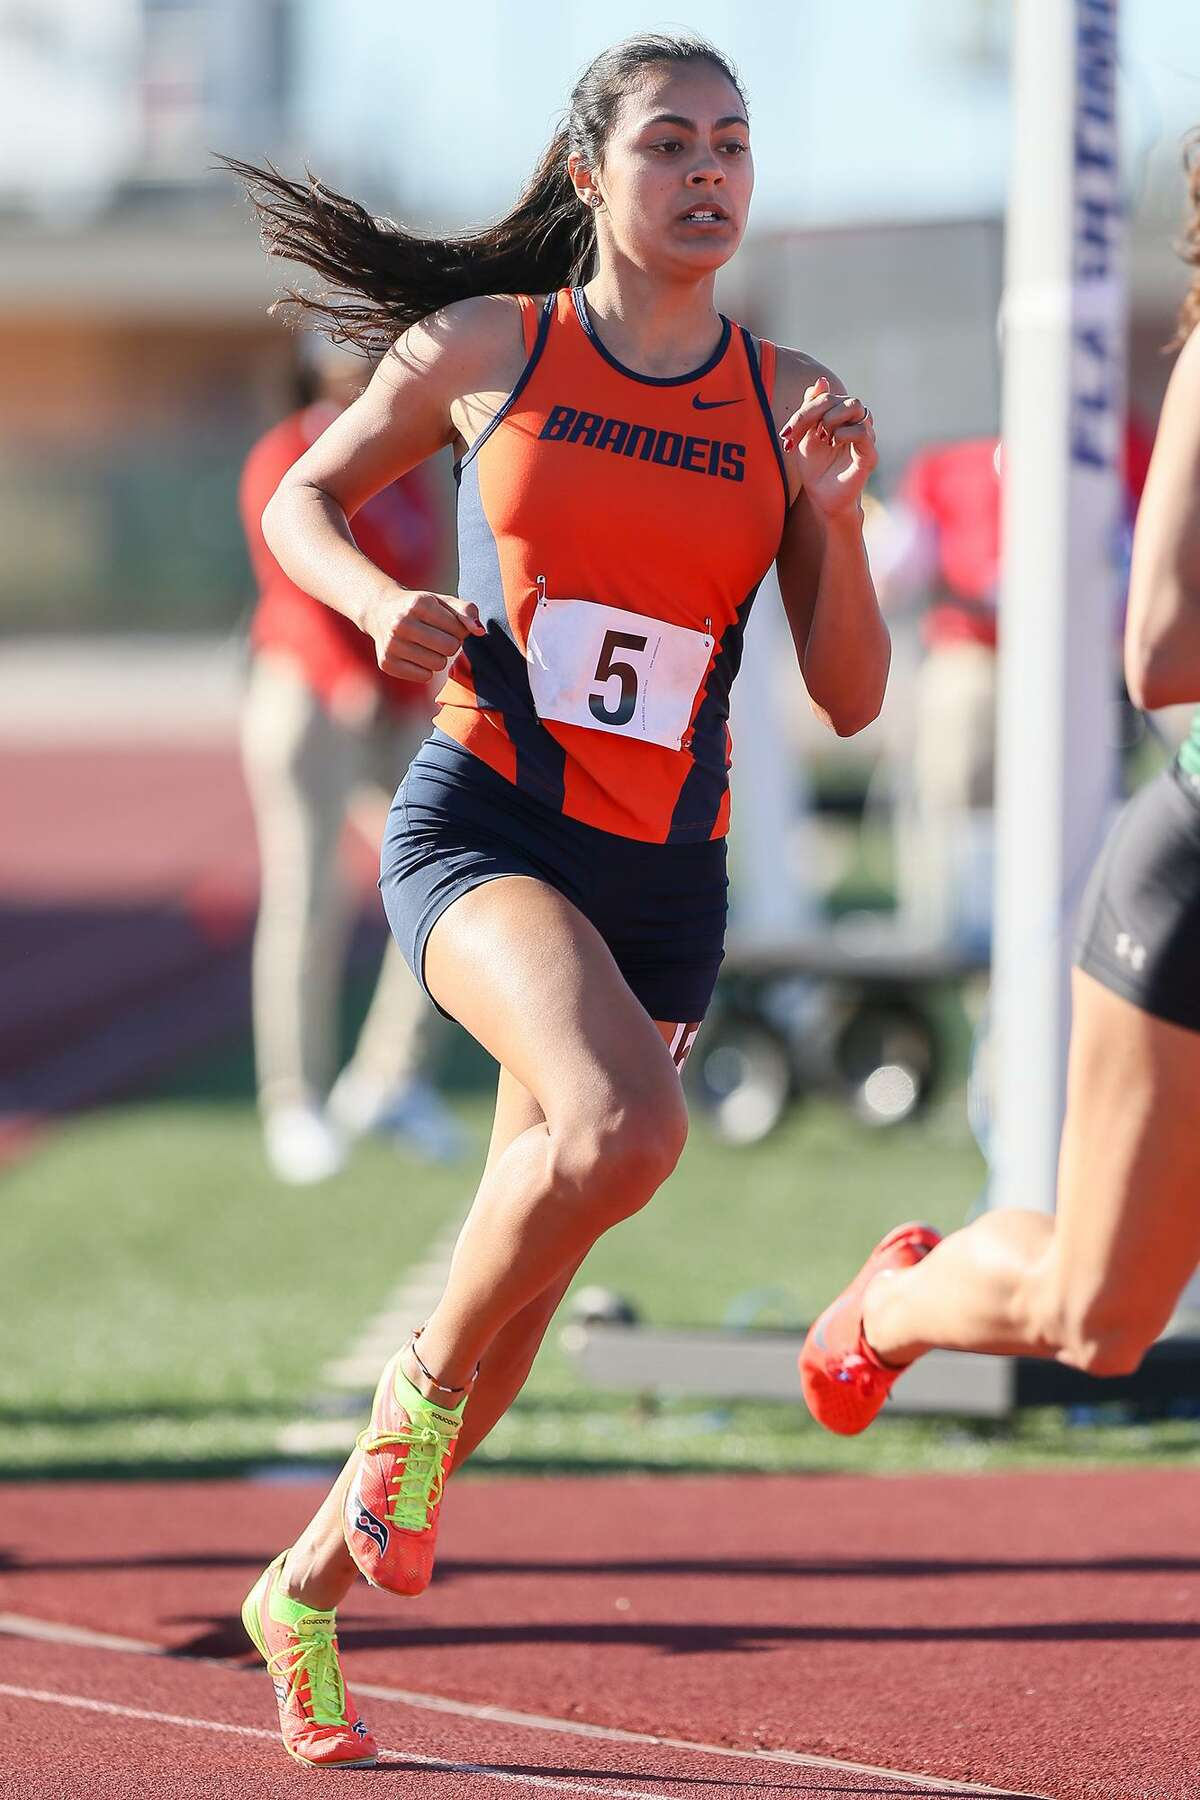 Brandeis senior Taigen Galvan won the 800 meters at the 27/28-6A area meet in 2:21.76 seconds and the 1,600 in 5:17.04. She hopes to qualify for her first state meet at next weekend's regionals.